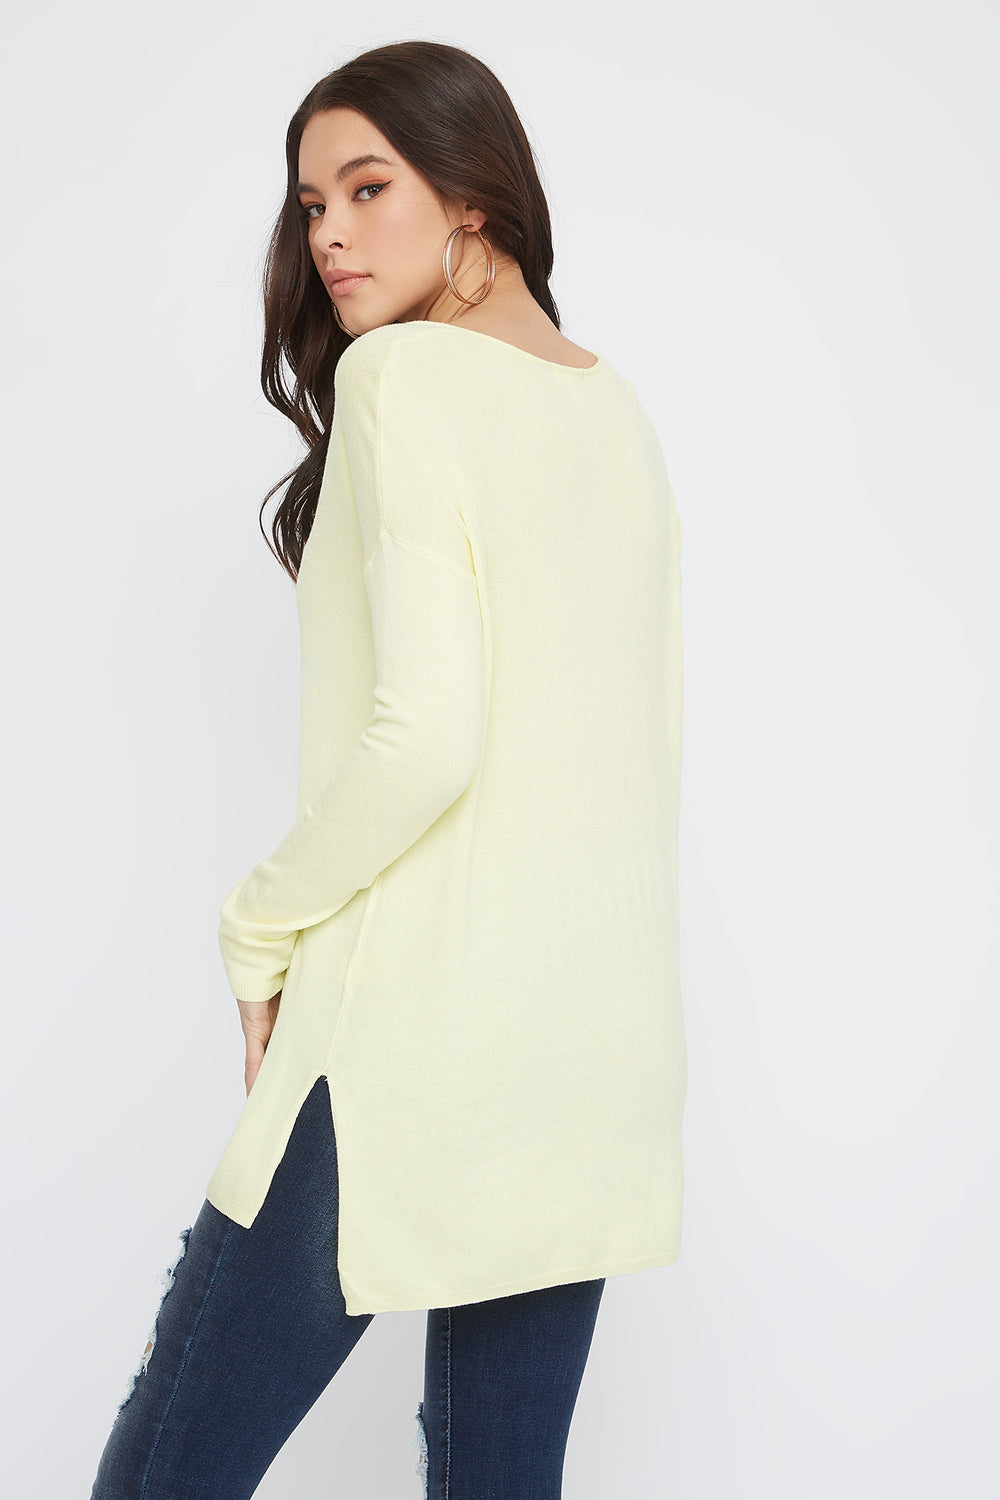 Knit V-Neck High-Low Long Sleeve Yellow